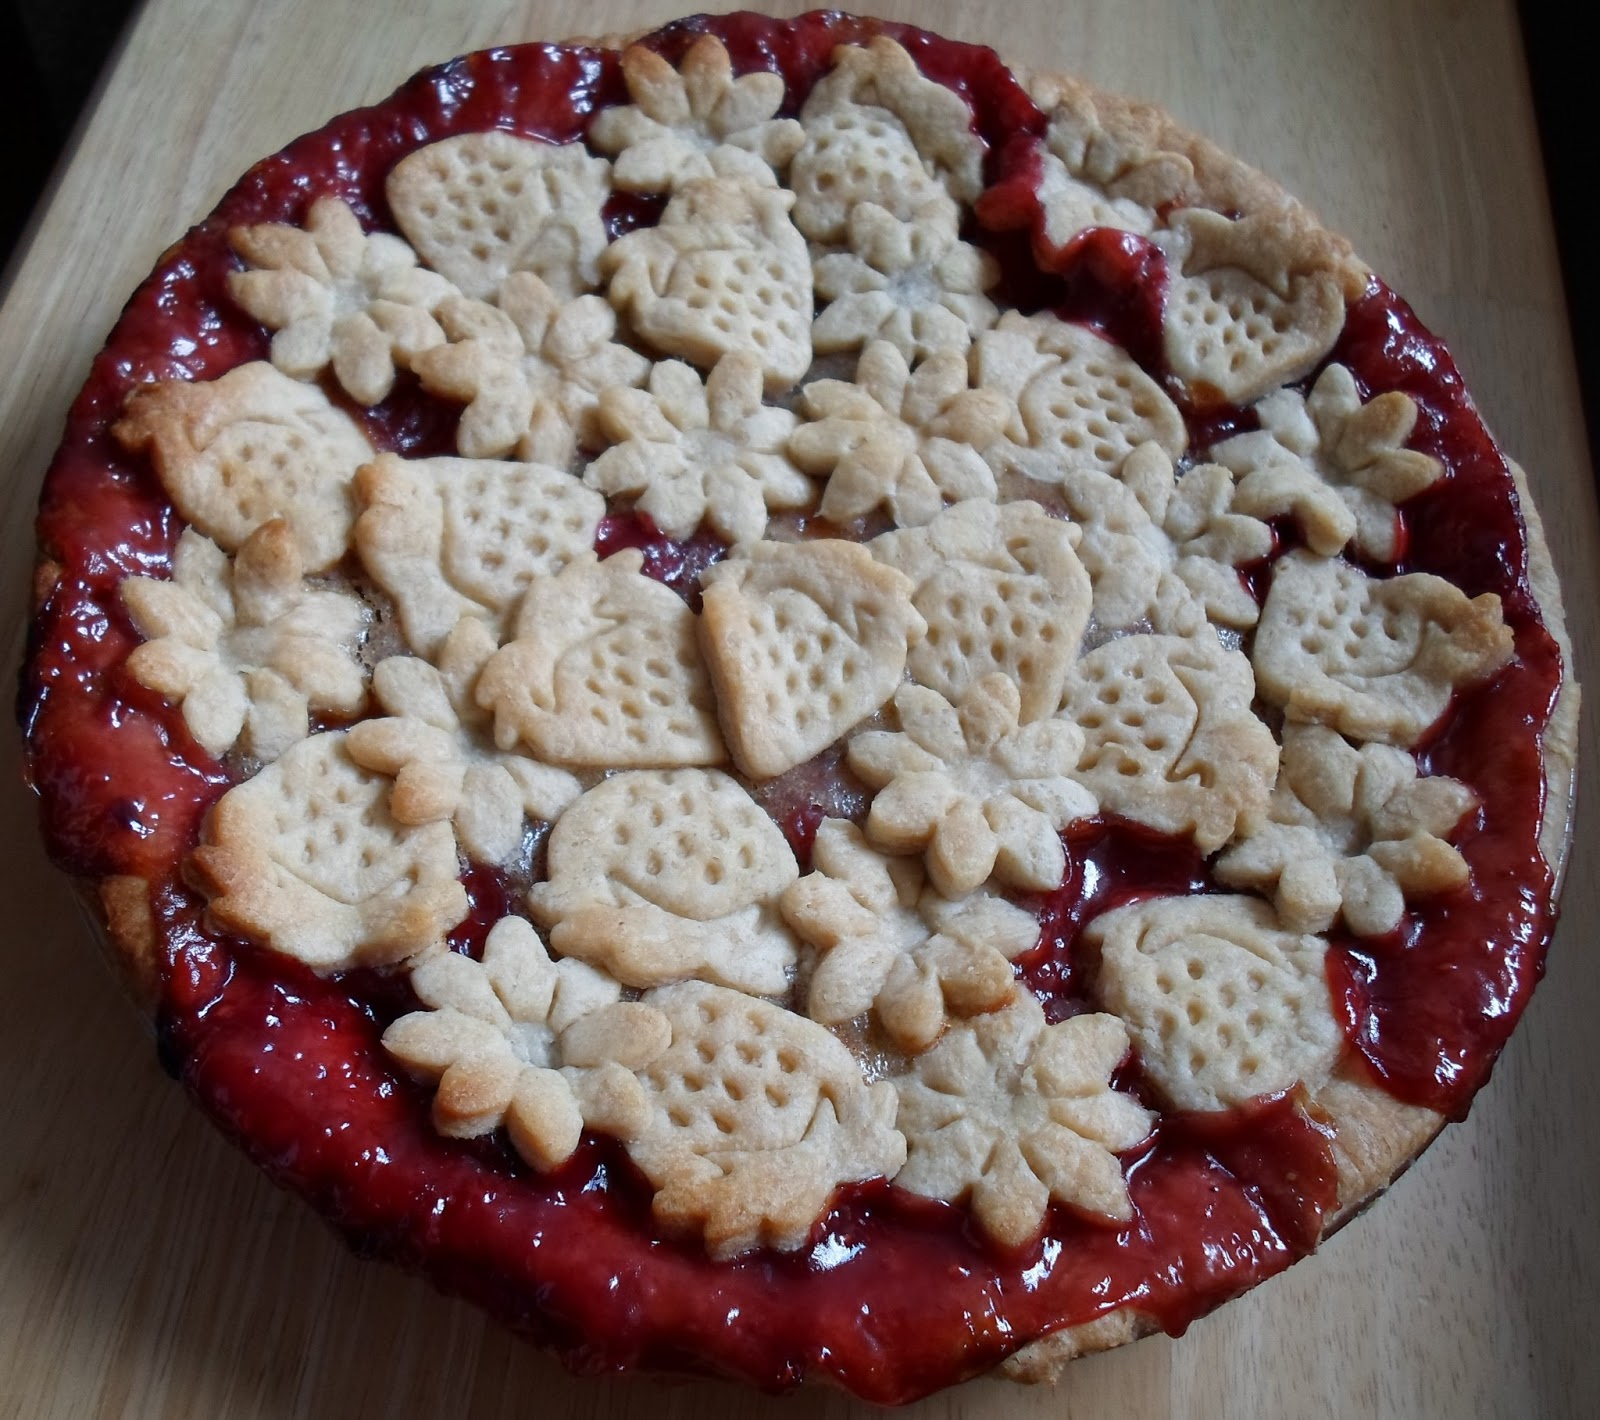 Happier Than A Pig In Mud: A Berry Peachy Pie From Frozen